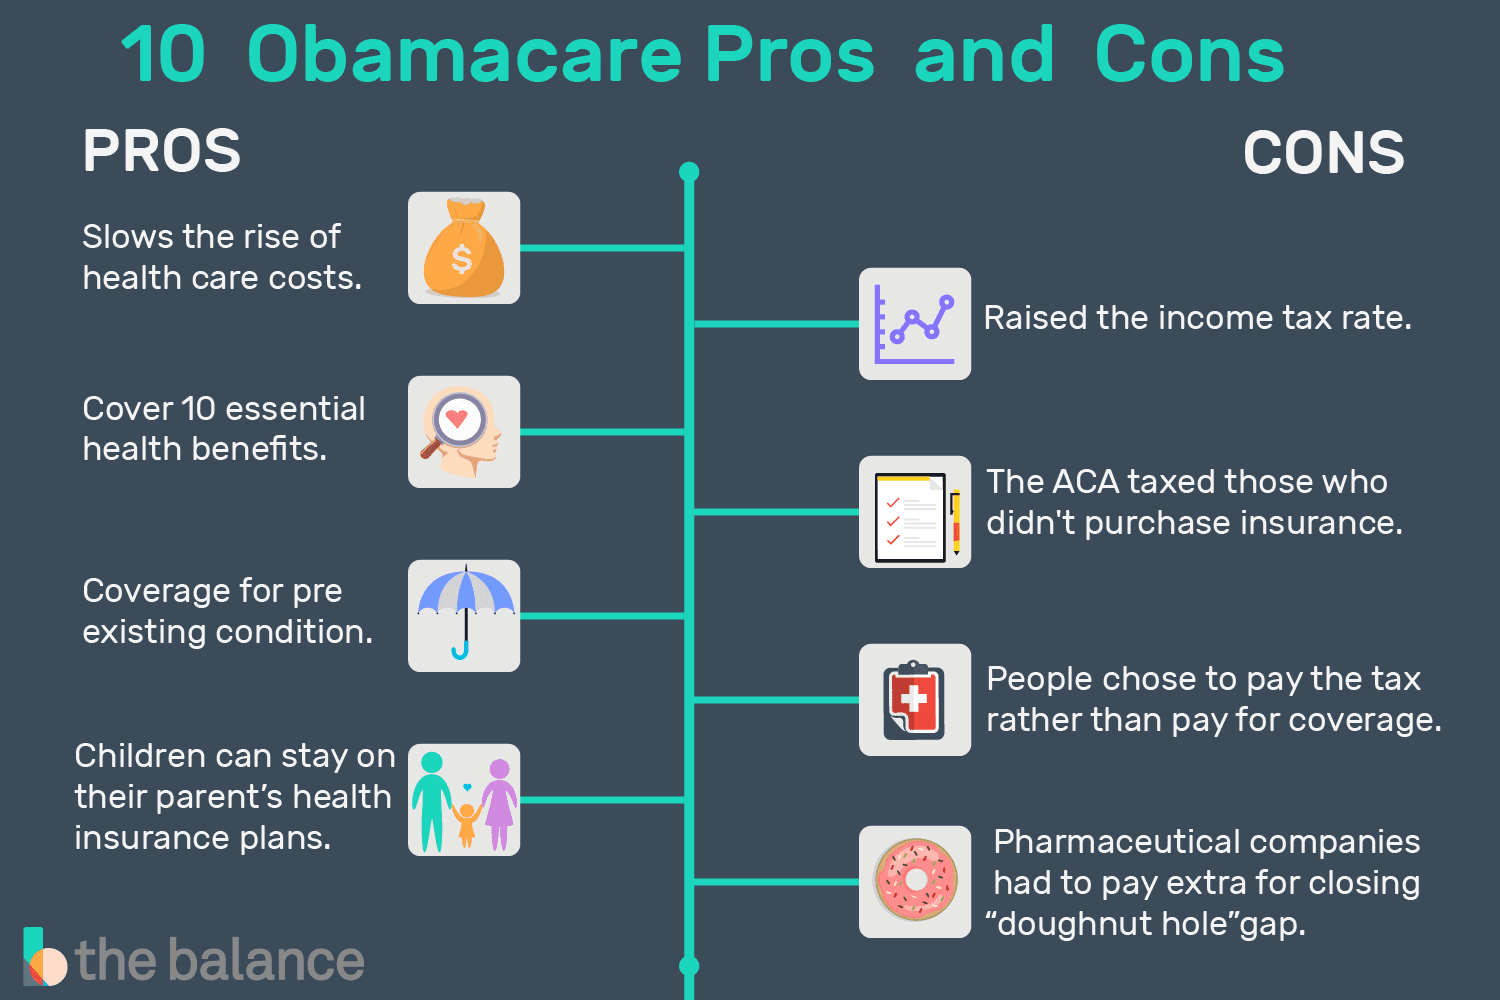 obamacare pros and cons  good points of each side the balance